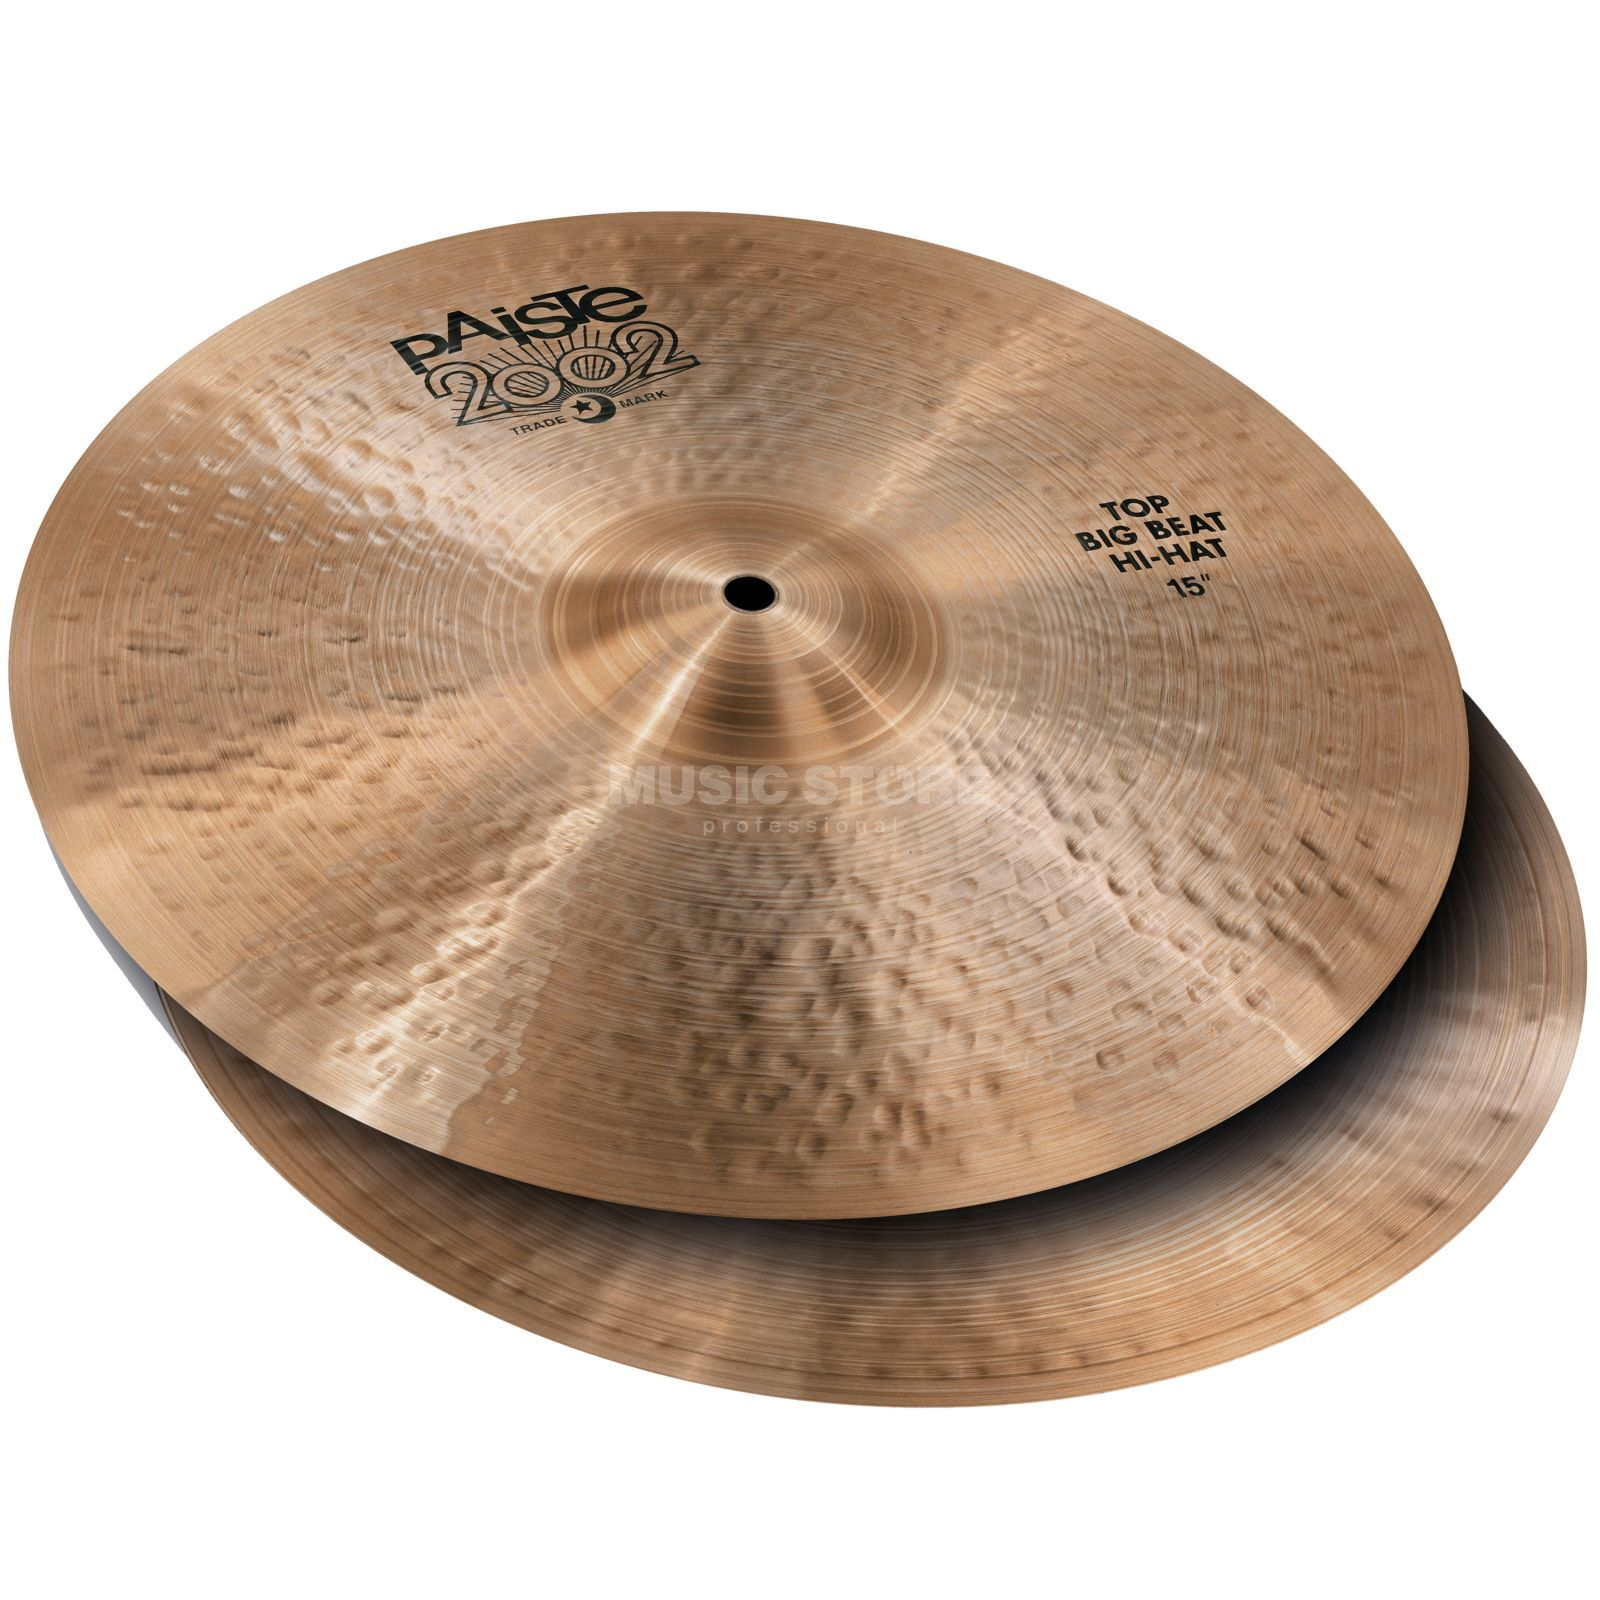 "Paiste 2002 Black Big Beat HiHat, 15"" Product Image"